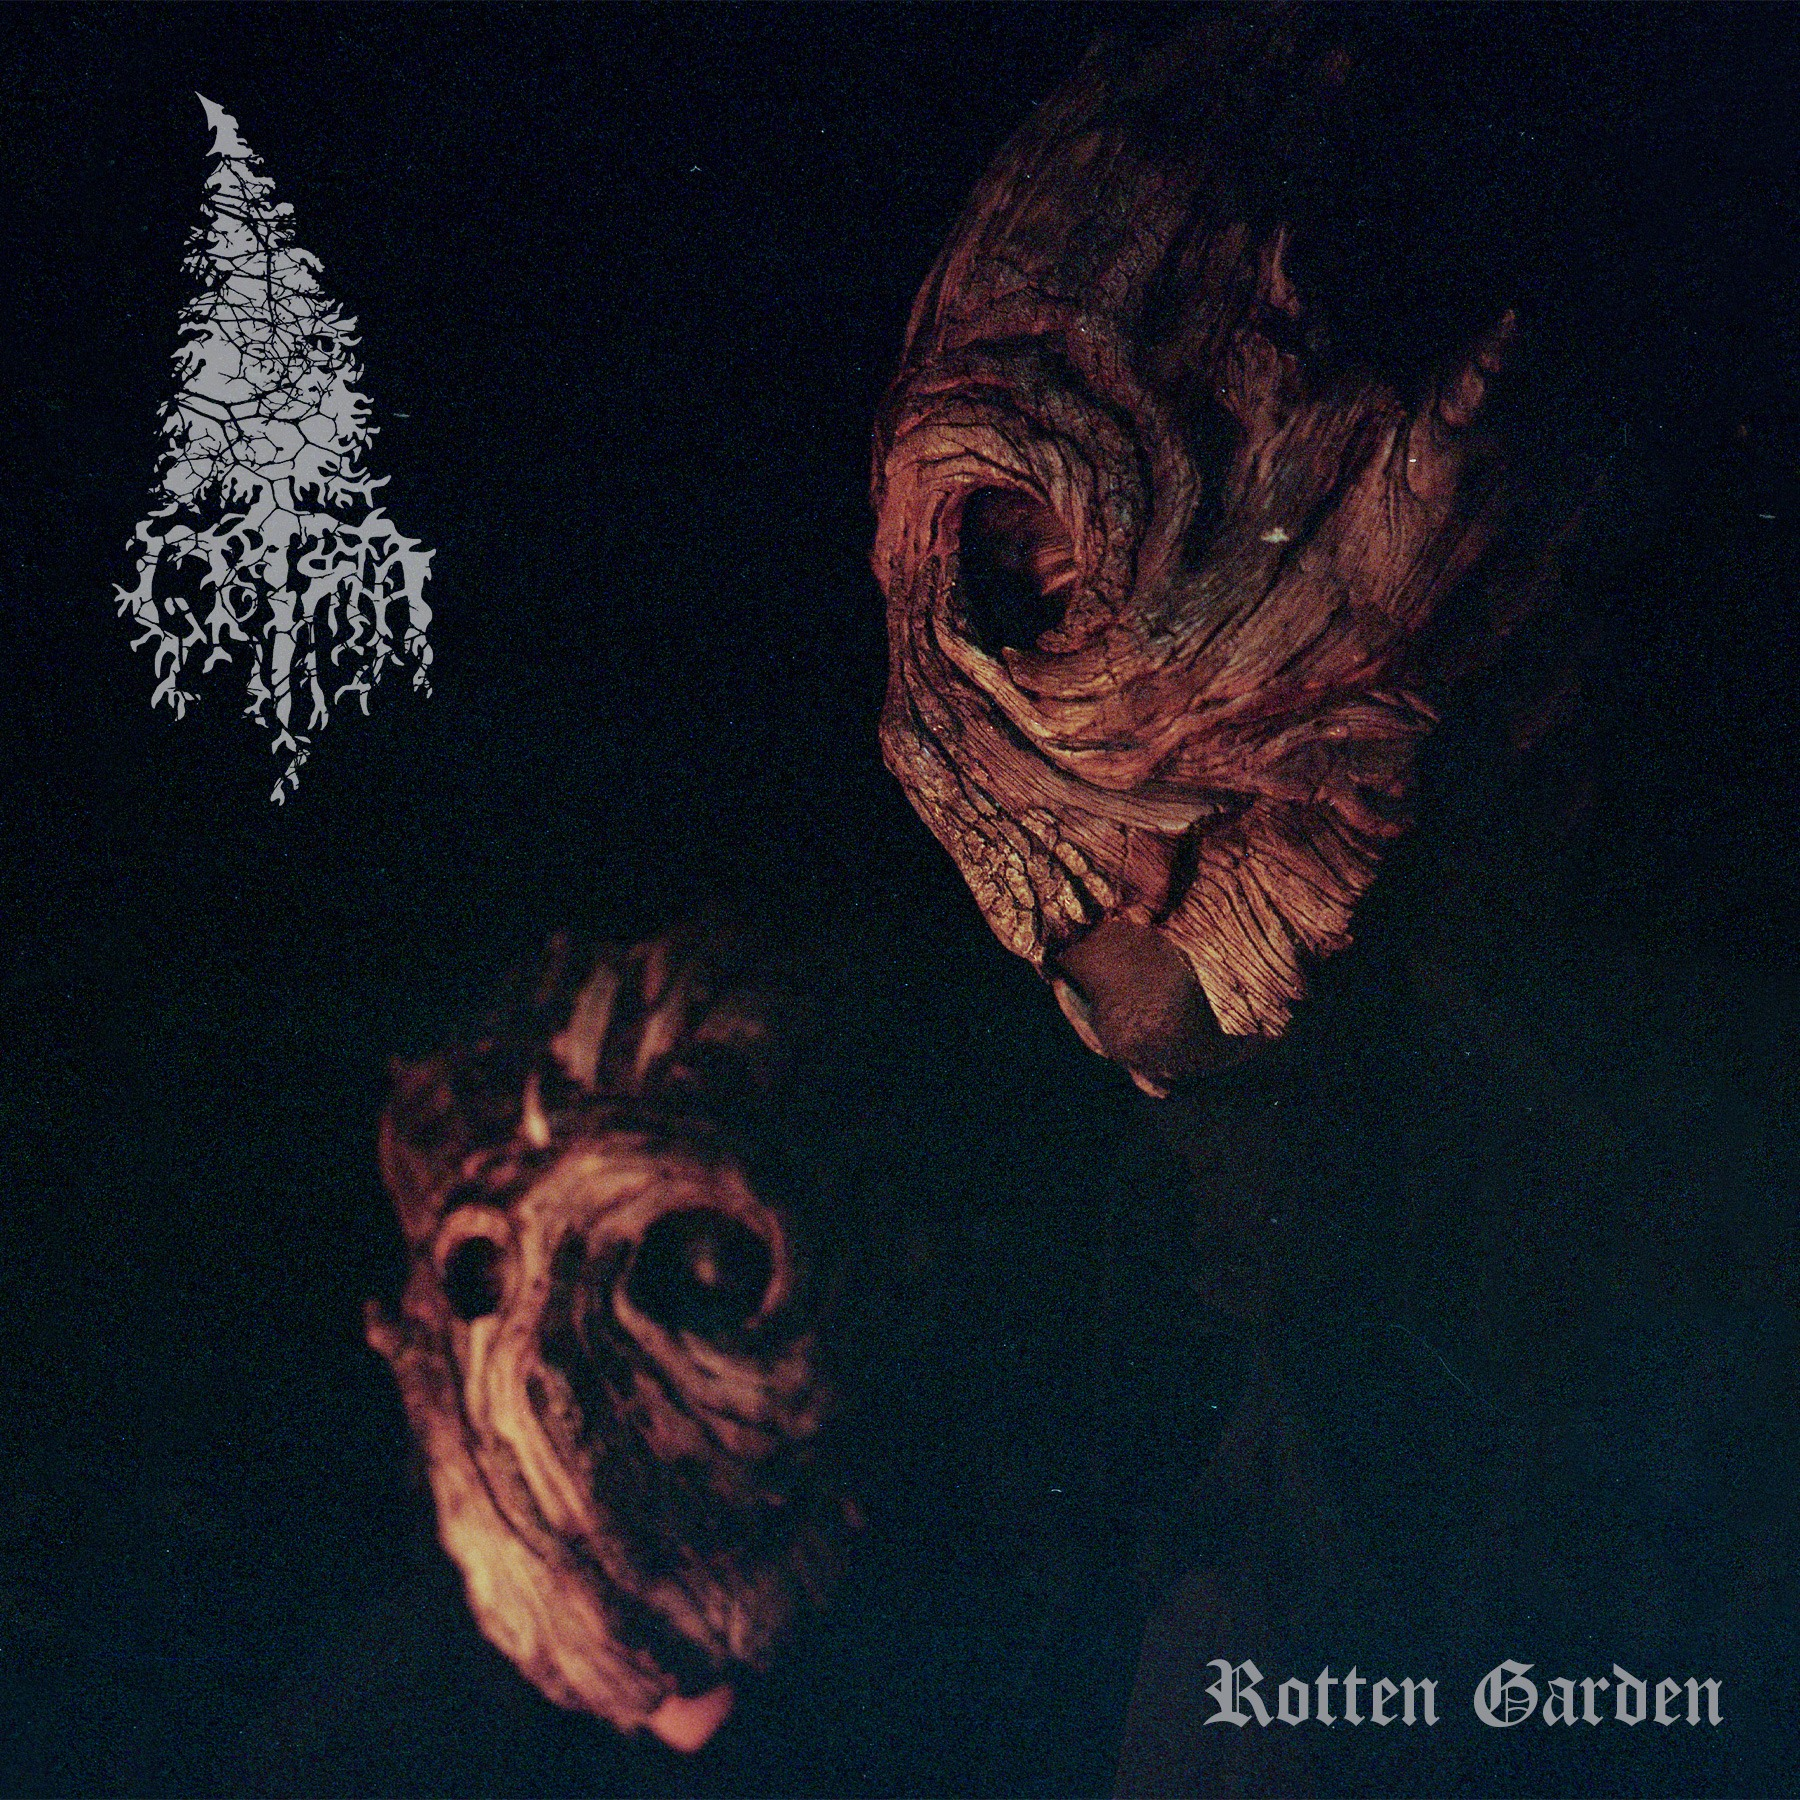 grima rotten garden album cover artwork